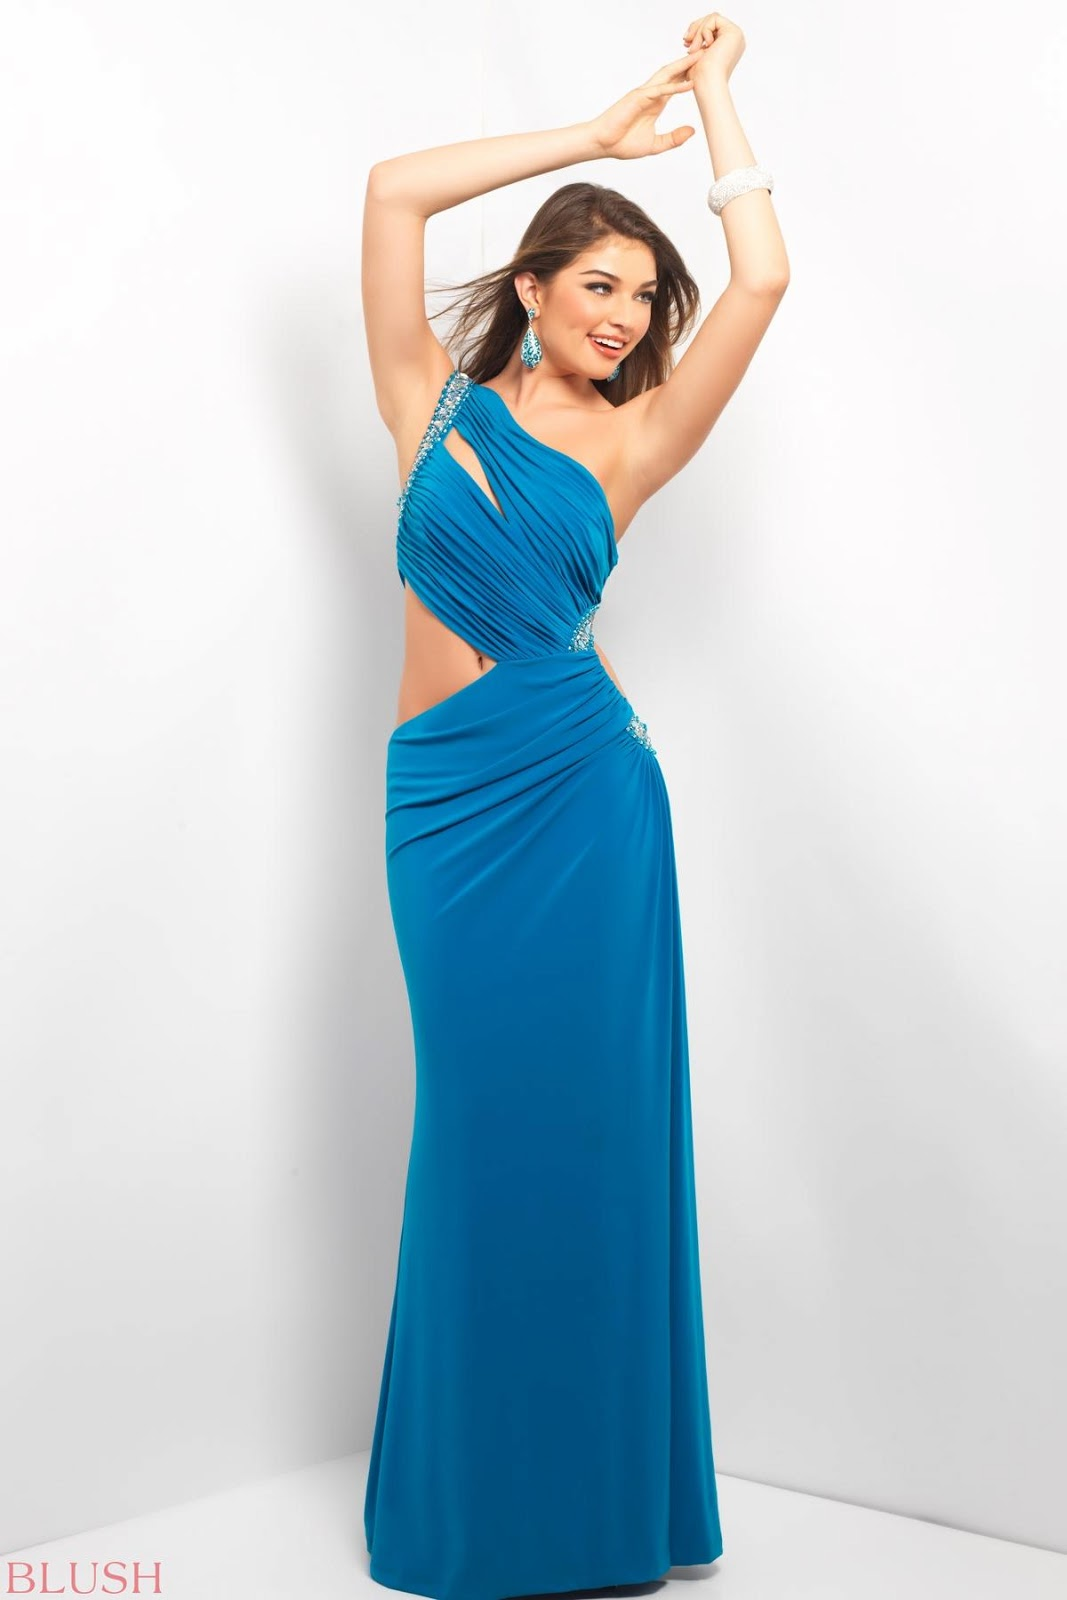 Prom Dresses 2013 | Fashion Party Prom Dresses Online Blog